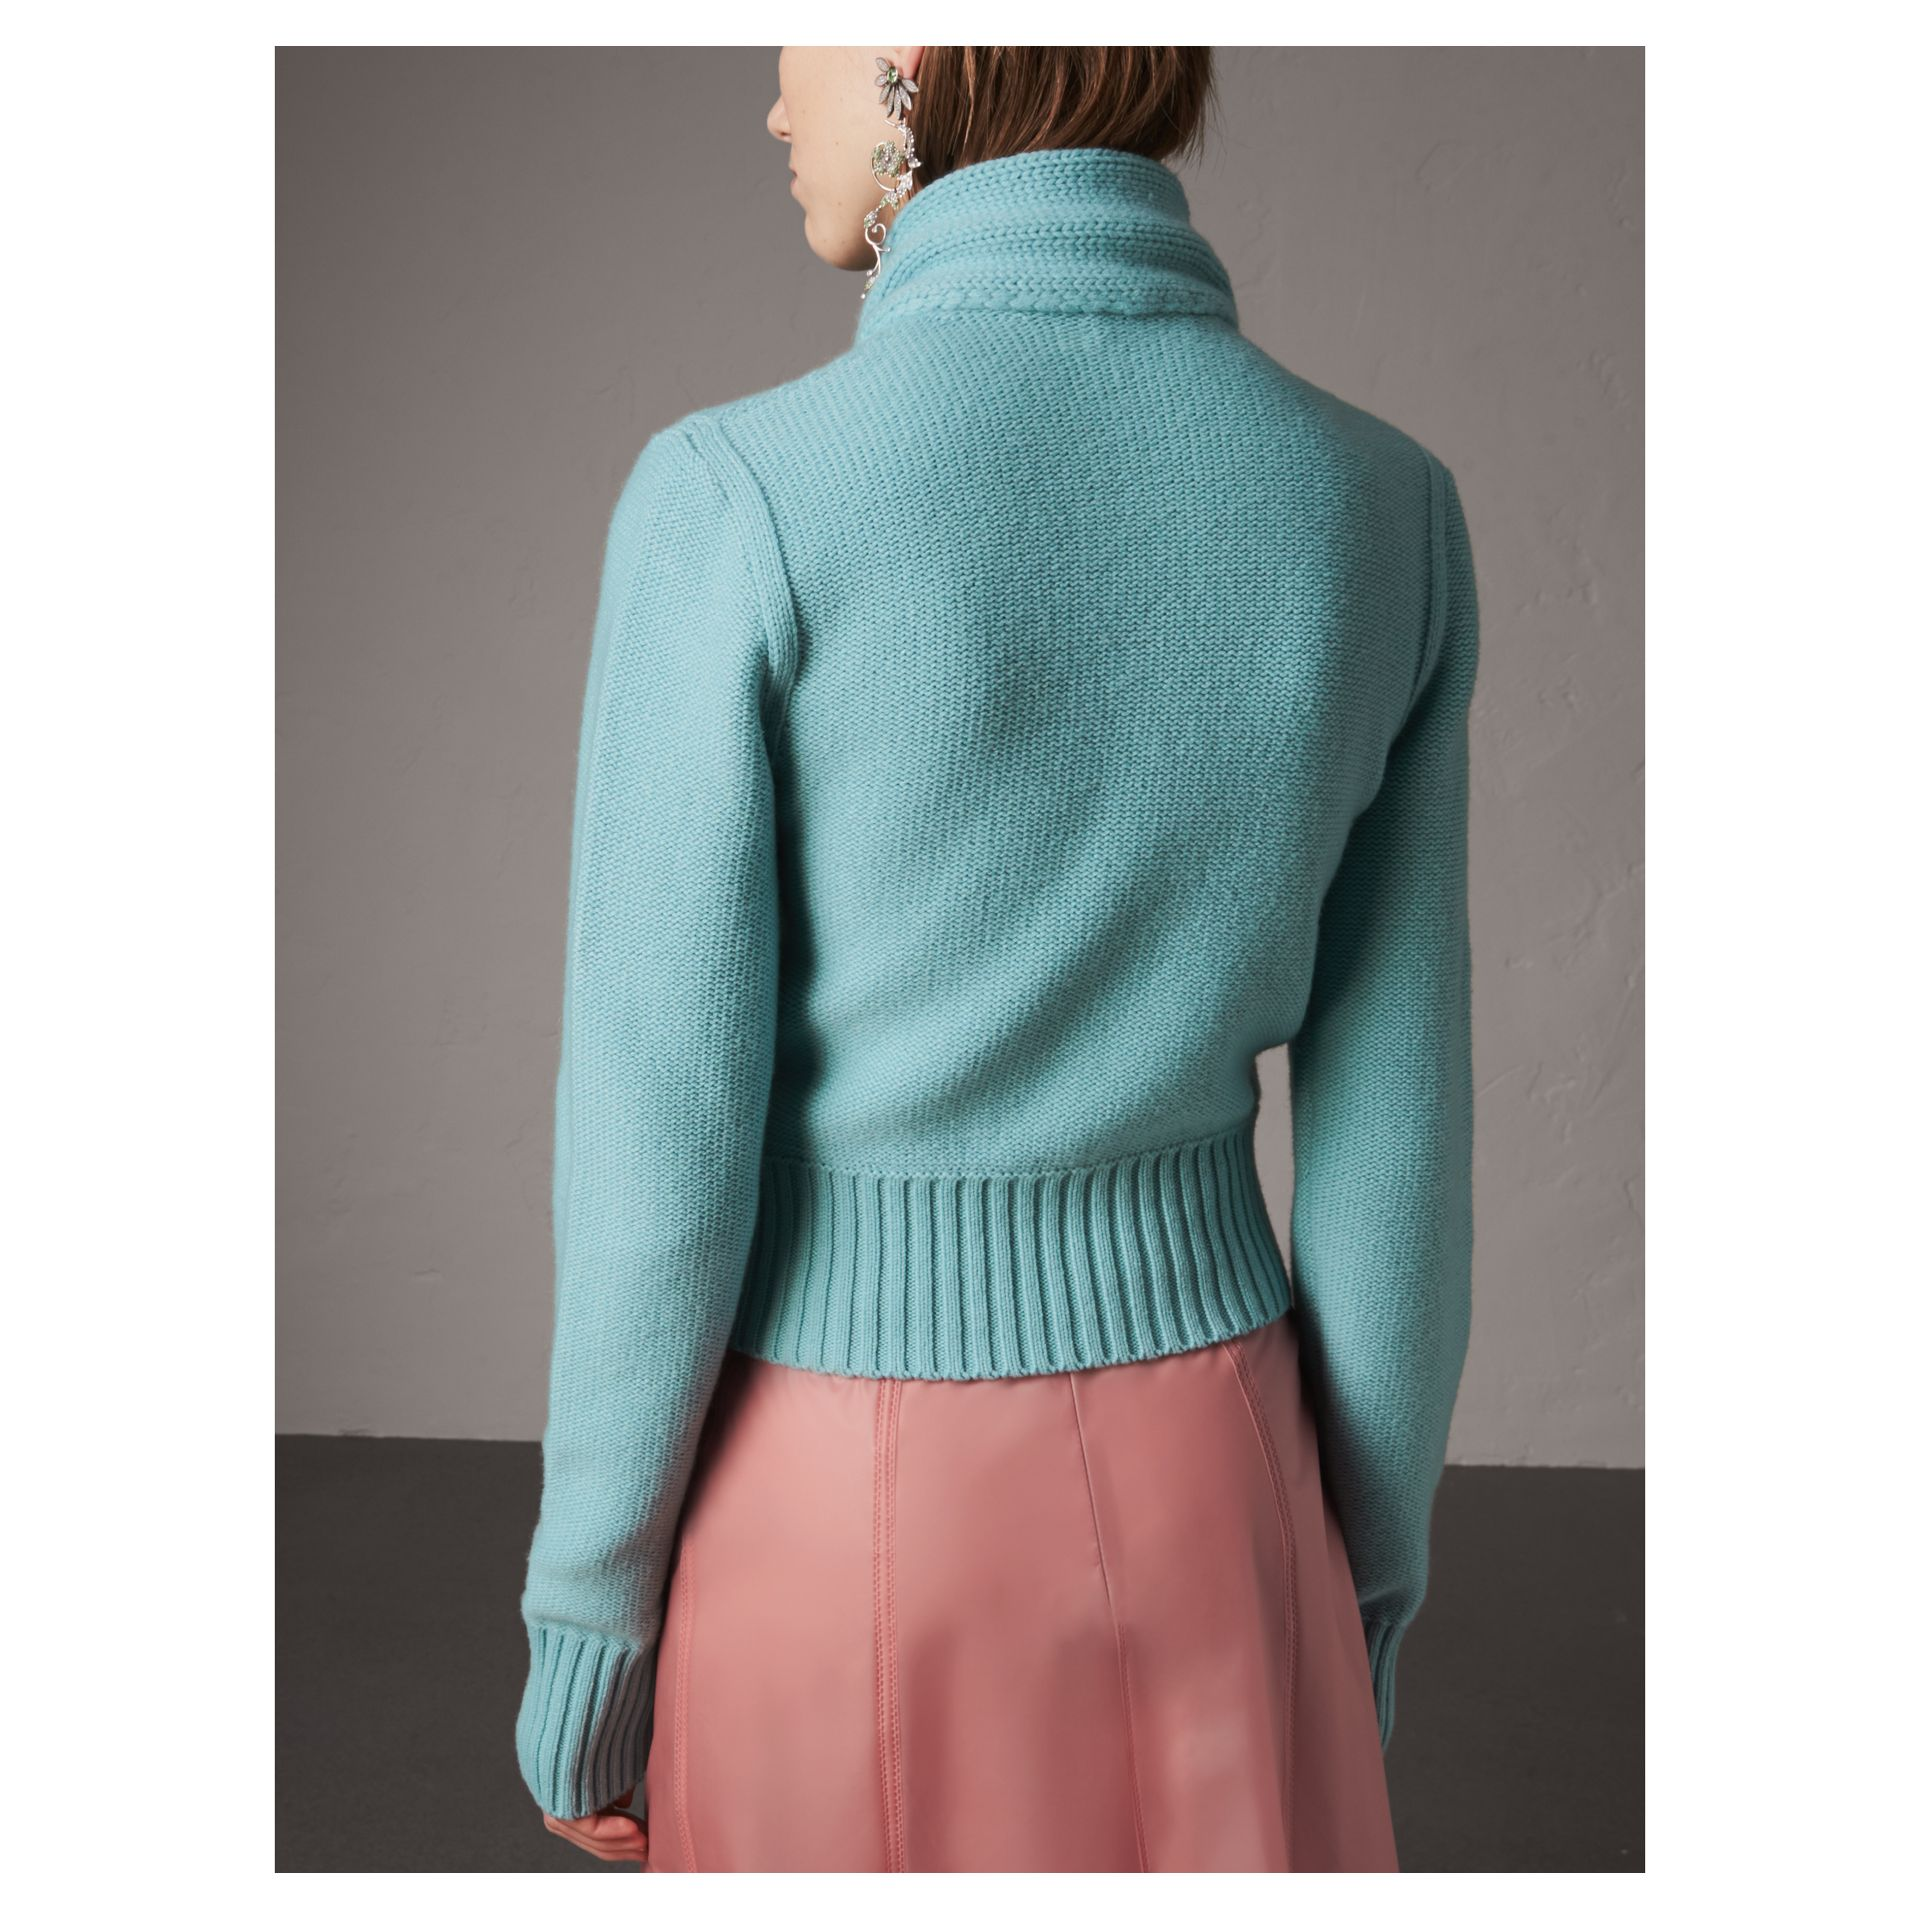 Cashmere Tie-neck Sweater in Powder Blue - Women | Burberry - gallery image 3